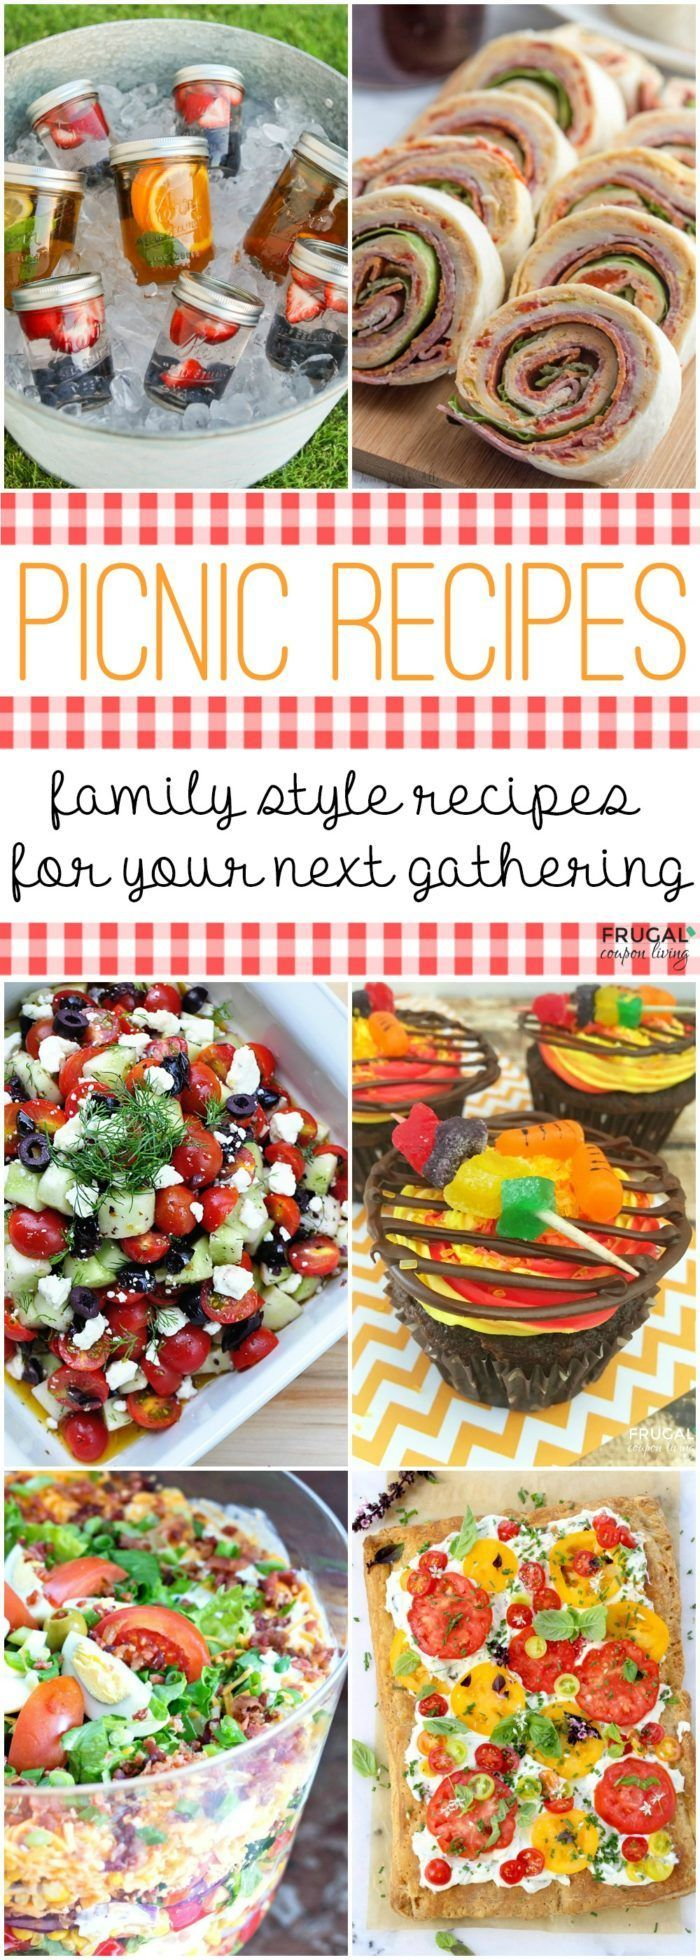 Picnic Food Ideas - Tasty picnic recipes that can be prepared and enjoy outdoors...